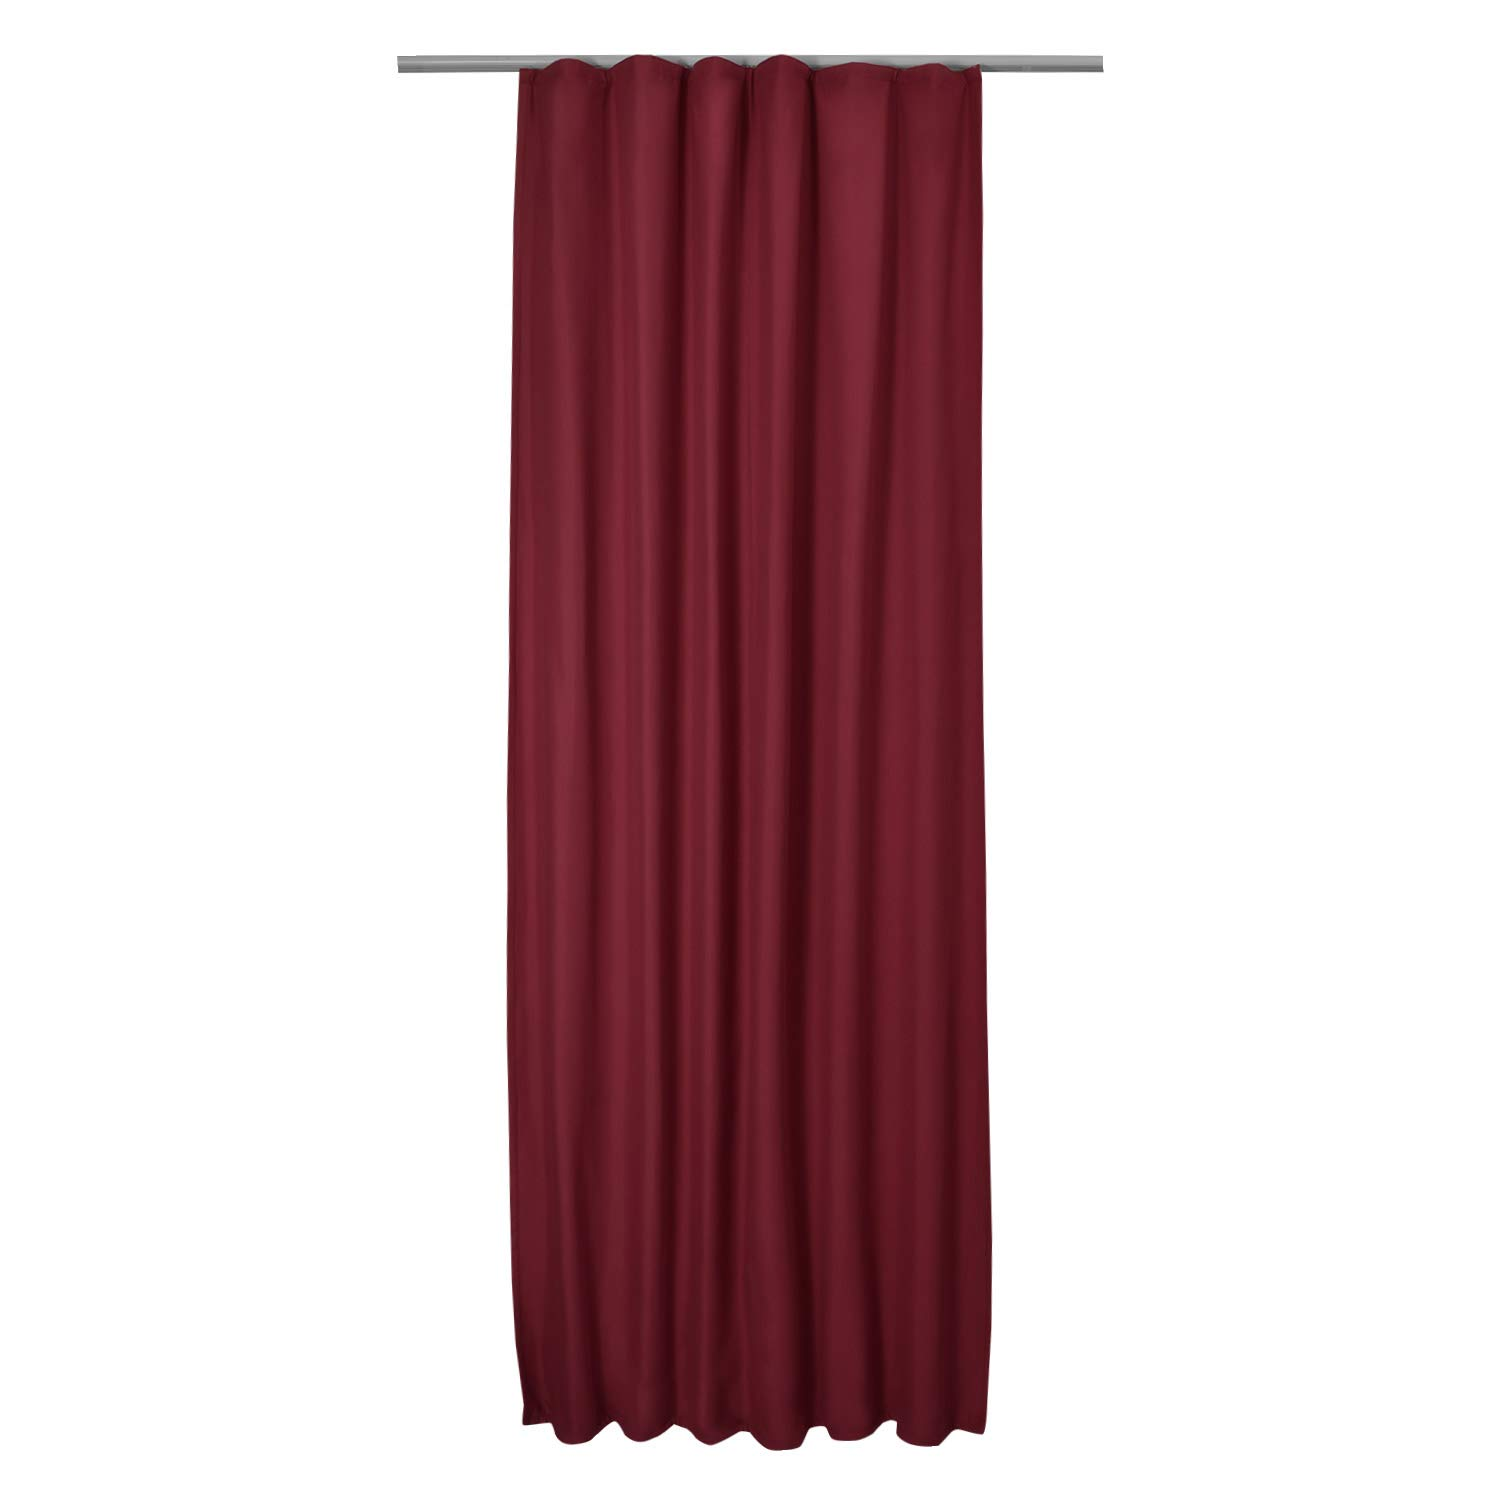 Beautissu Thermal-Curtain Amelie with Ribbon 140 cm 245 cm Drop Bordeaux (Red) Drape Isolating Curtain with Ribbon